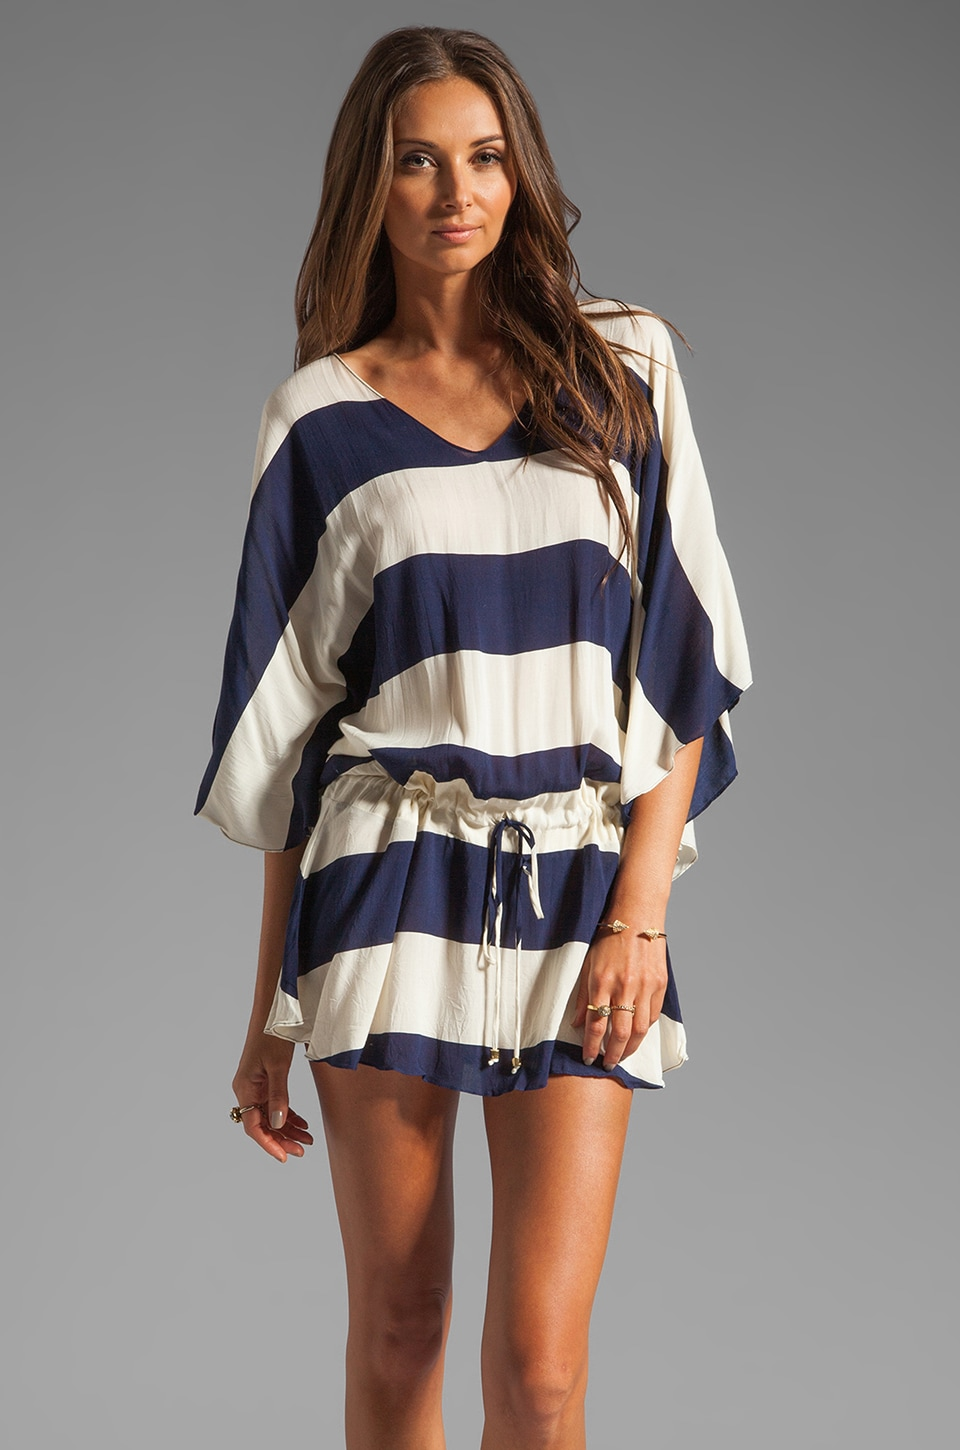 Vix Swimwear Malawi Vintage Tunic in Navy/White